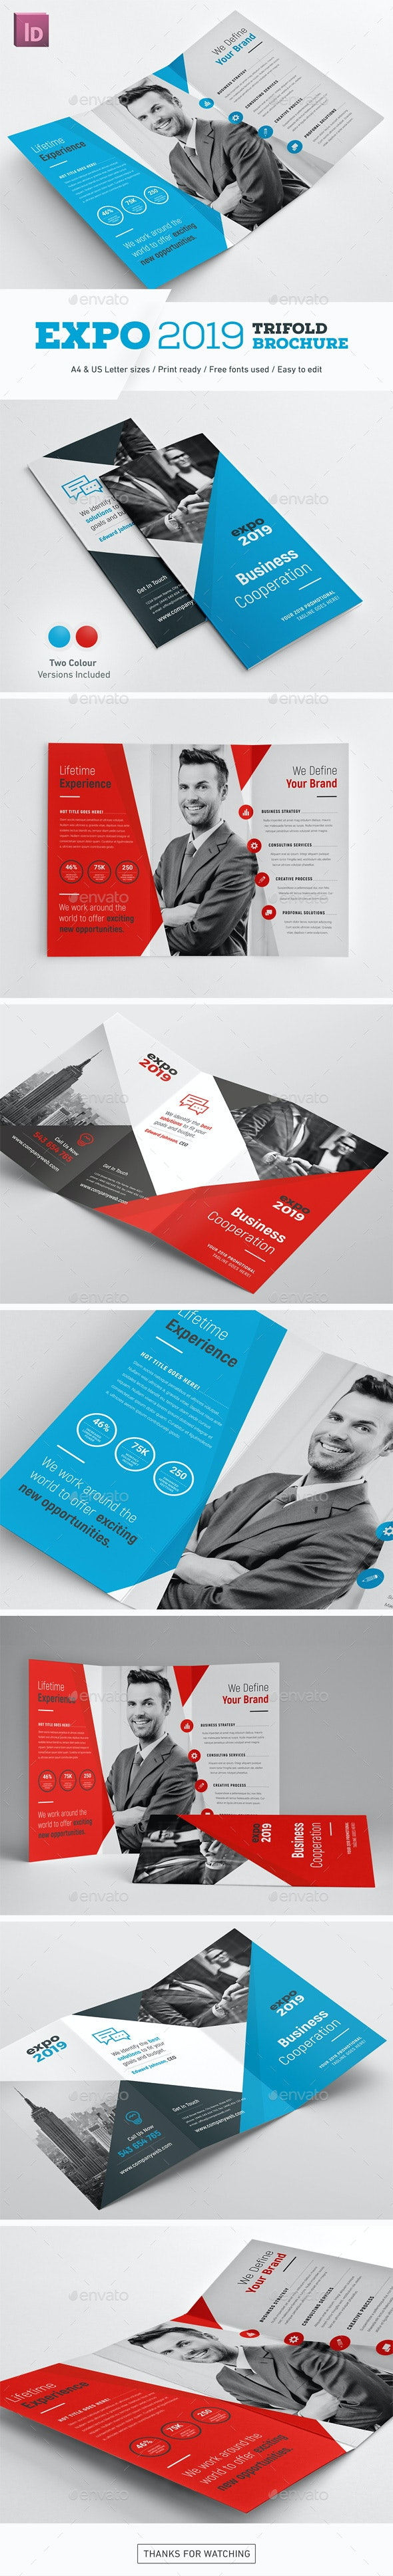 Expo 2019 Trifold Brochure - Corporate Brochures